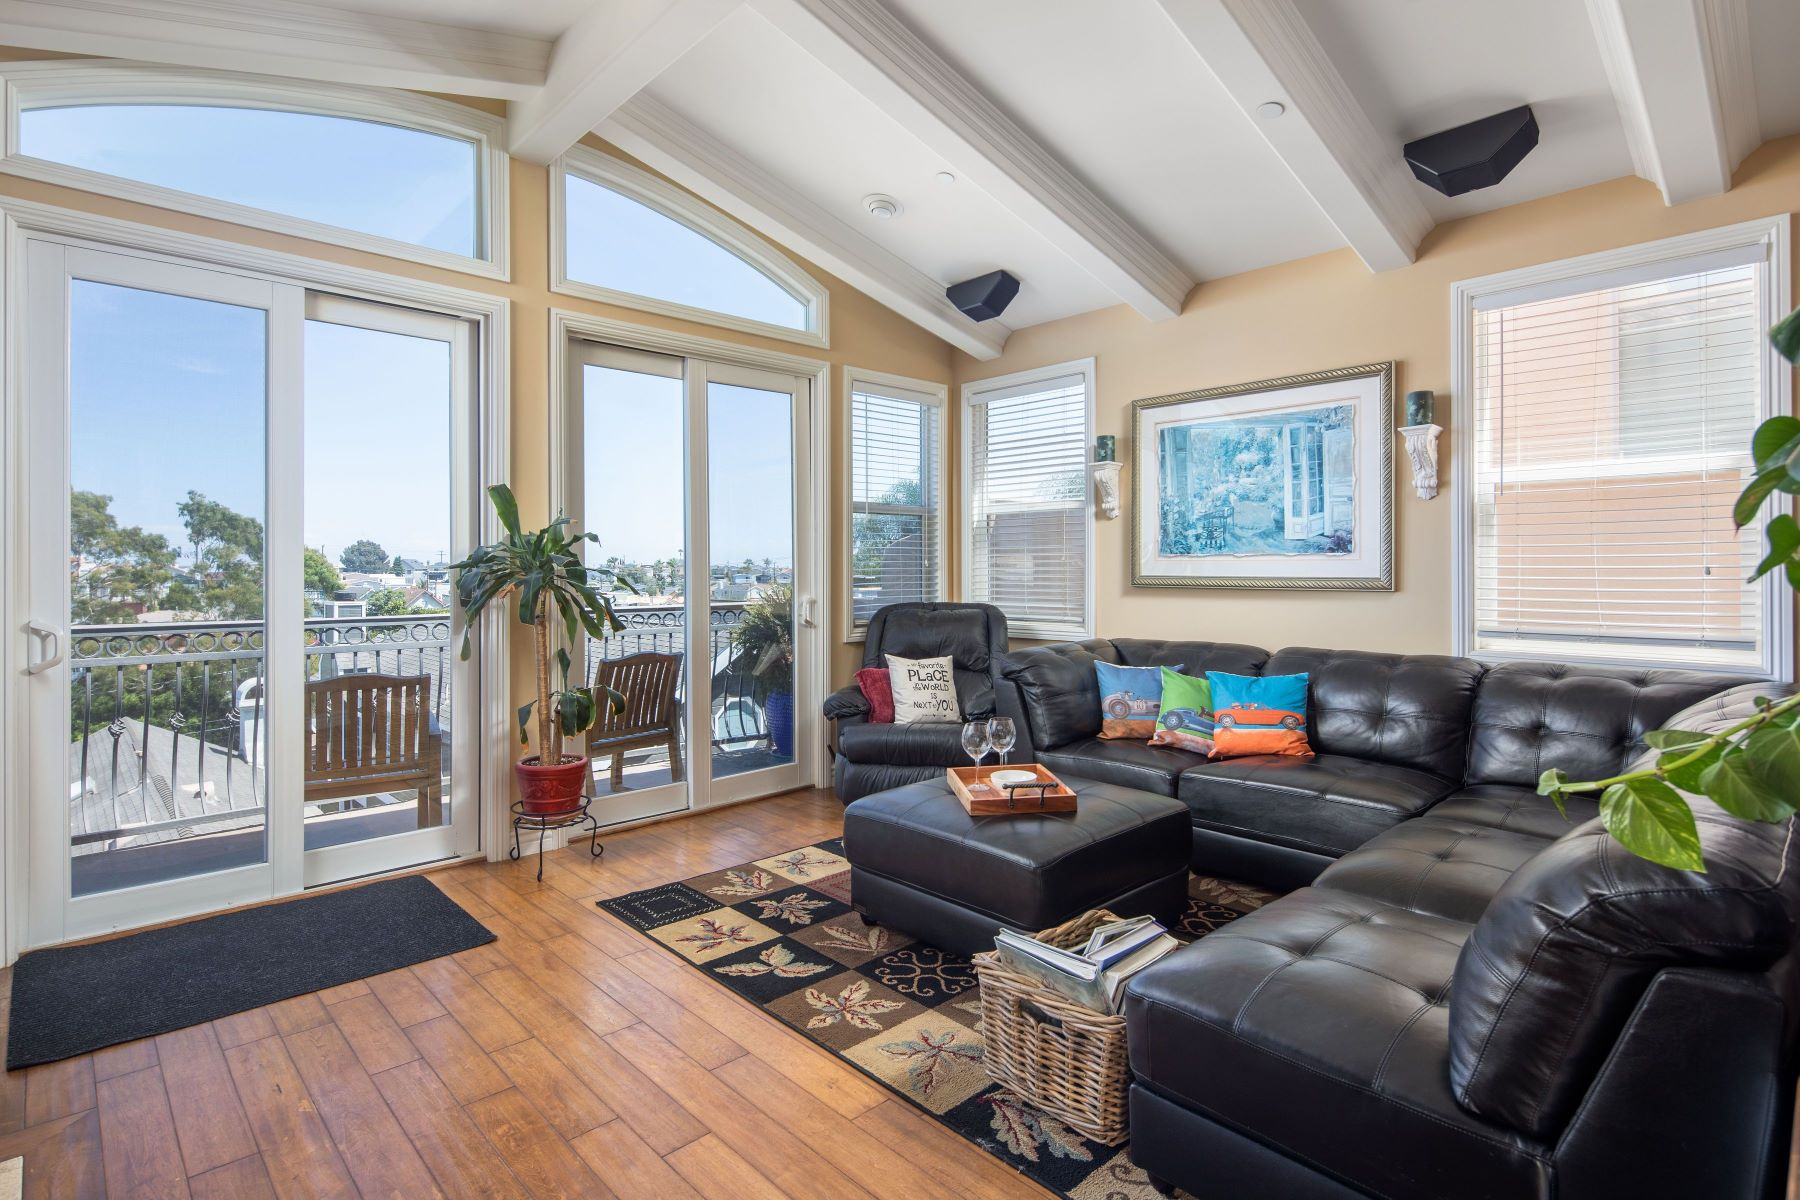 Single Family Homes for Sale at 1704 Harper Avenue, Redondo Beach, CA 90278 1704 Harper Avenue Redondo Beach, California 90278 United States